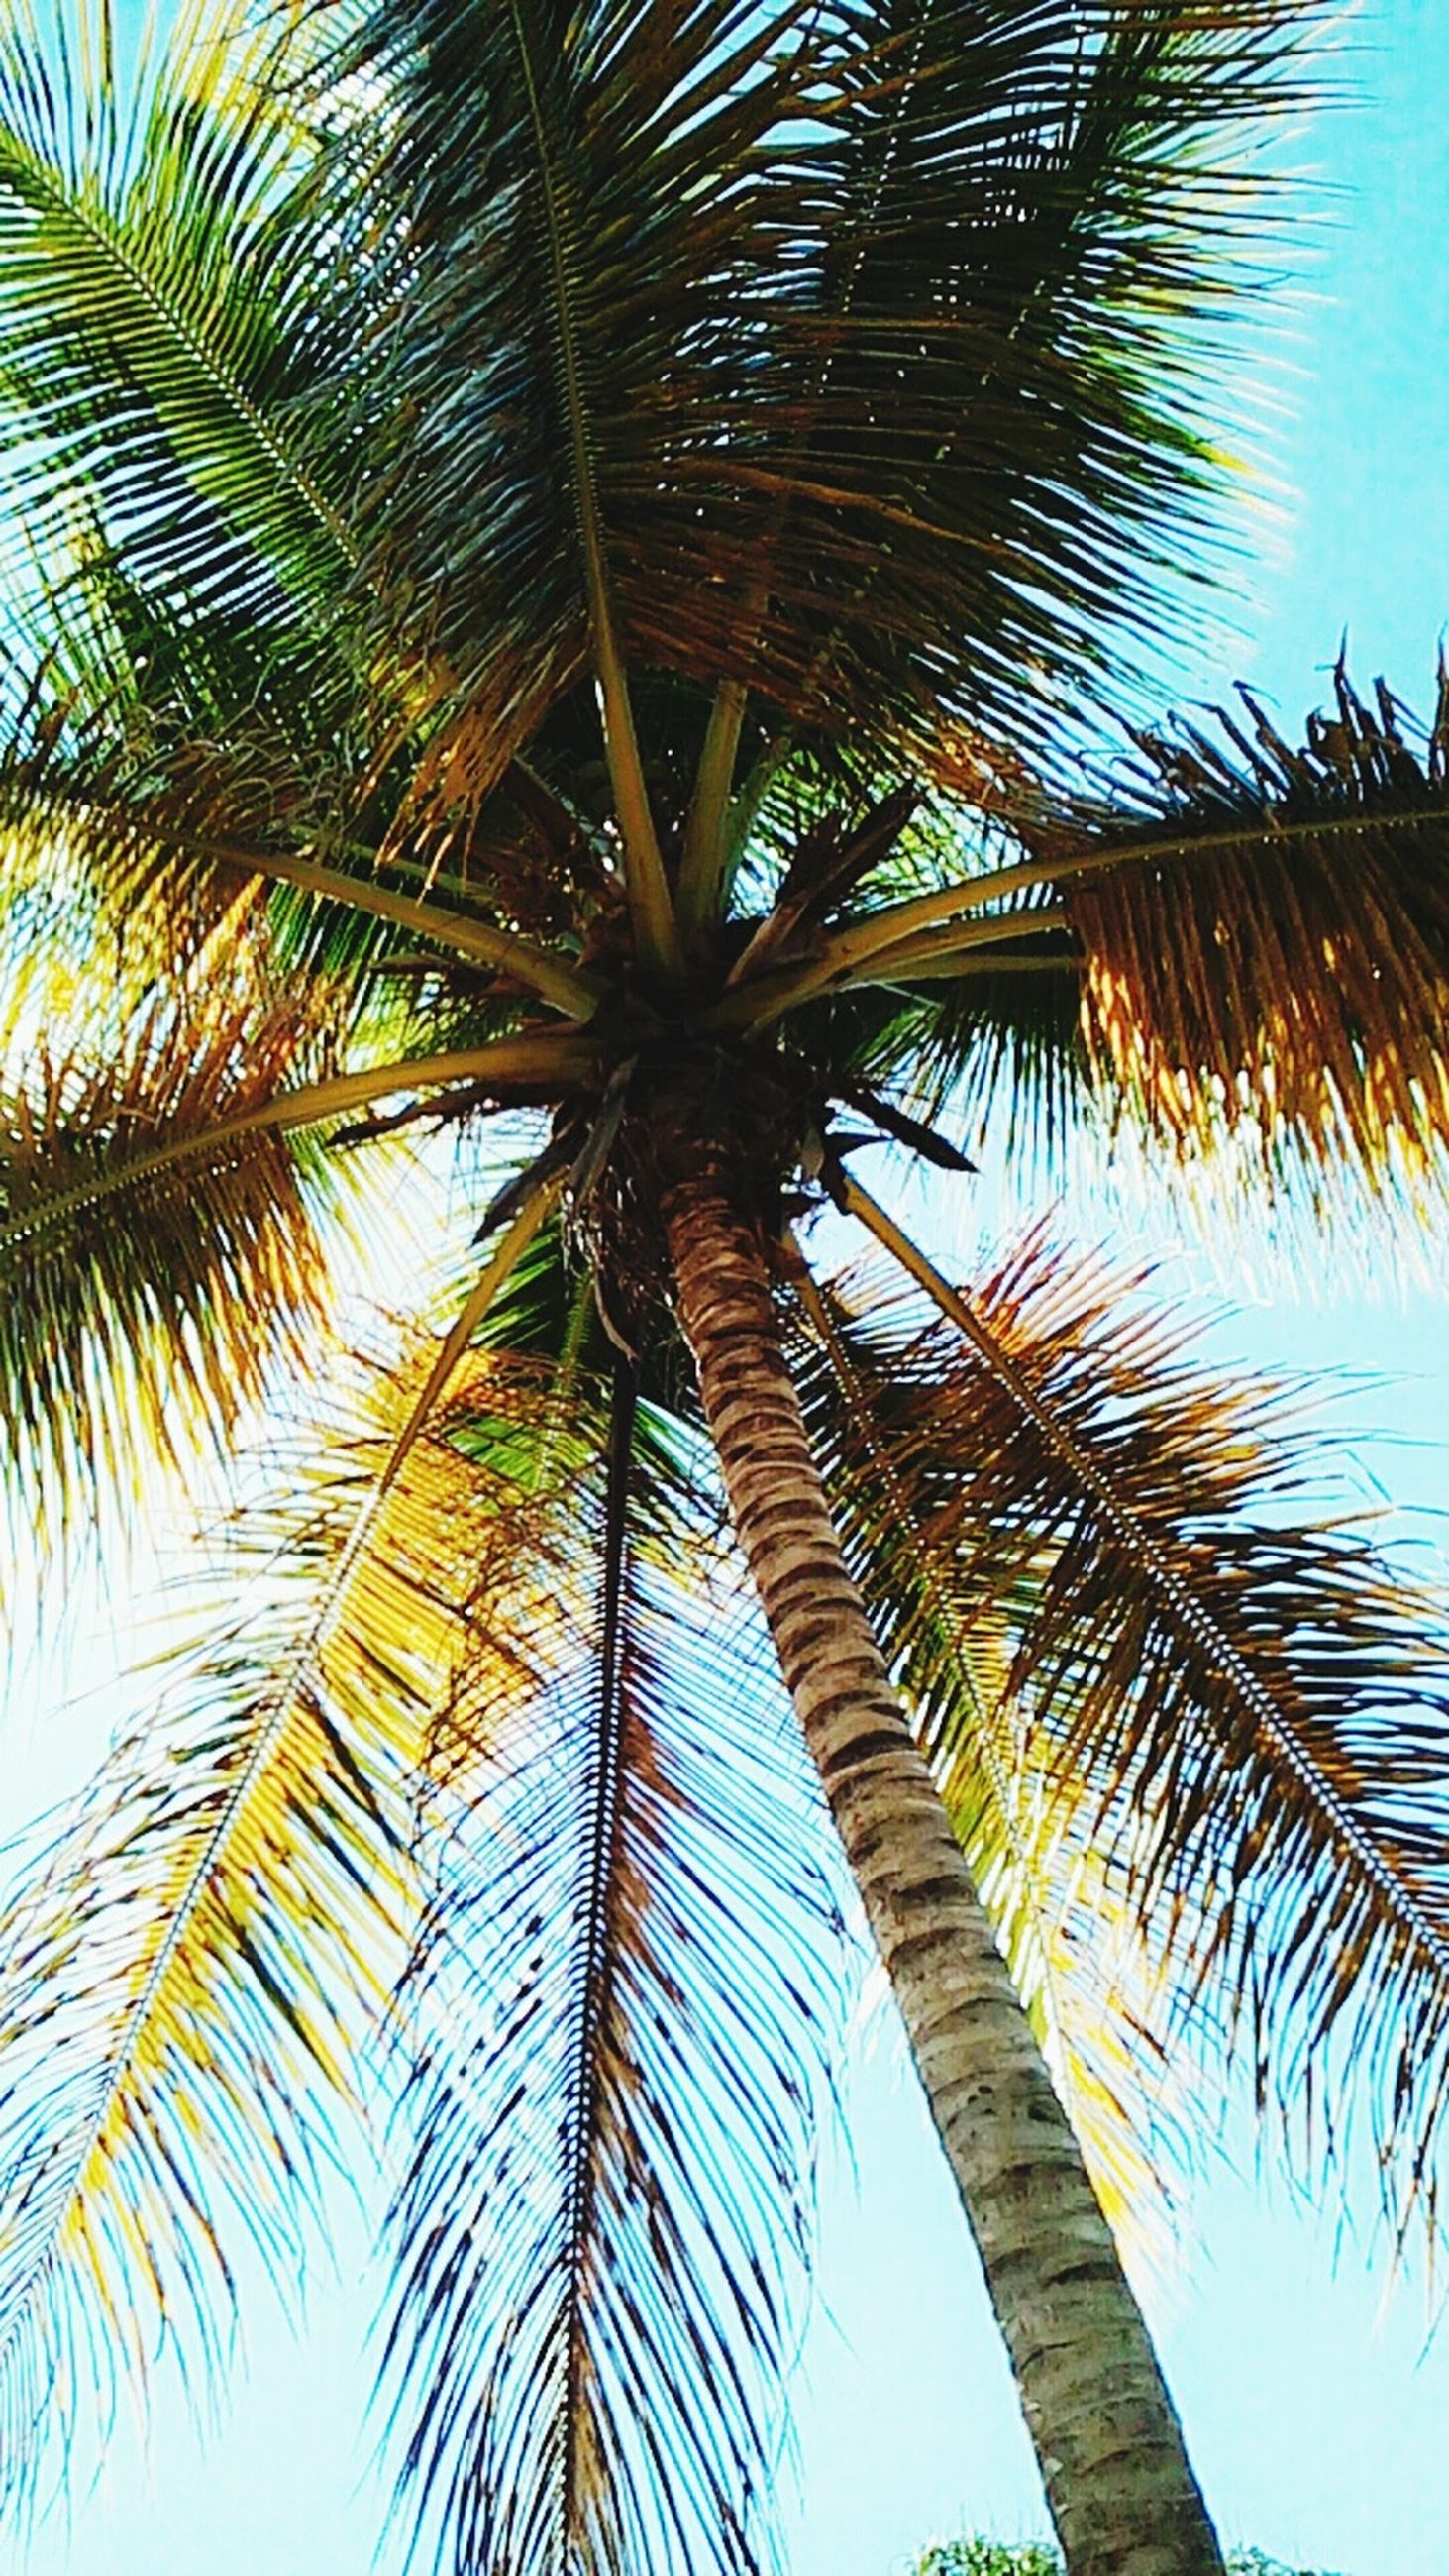 palm tree, tree, low angle view, sky, no people, growth, day, outdoors, nature, beauty in nature, palm frond